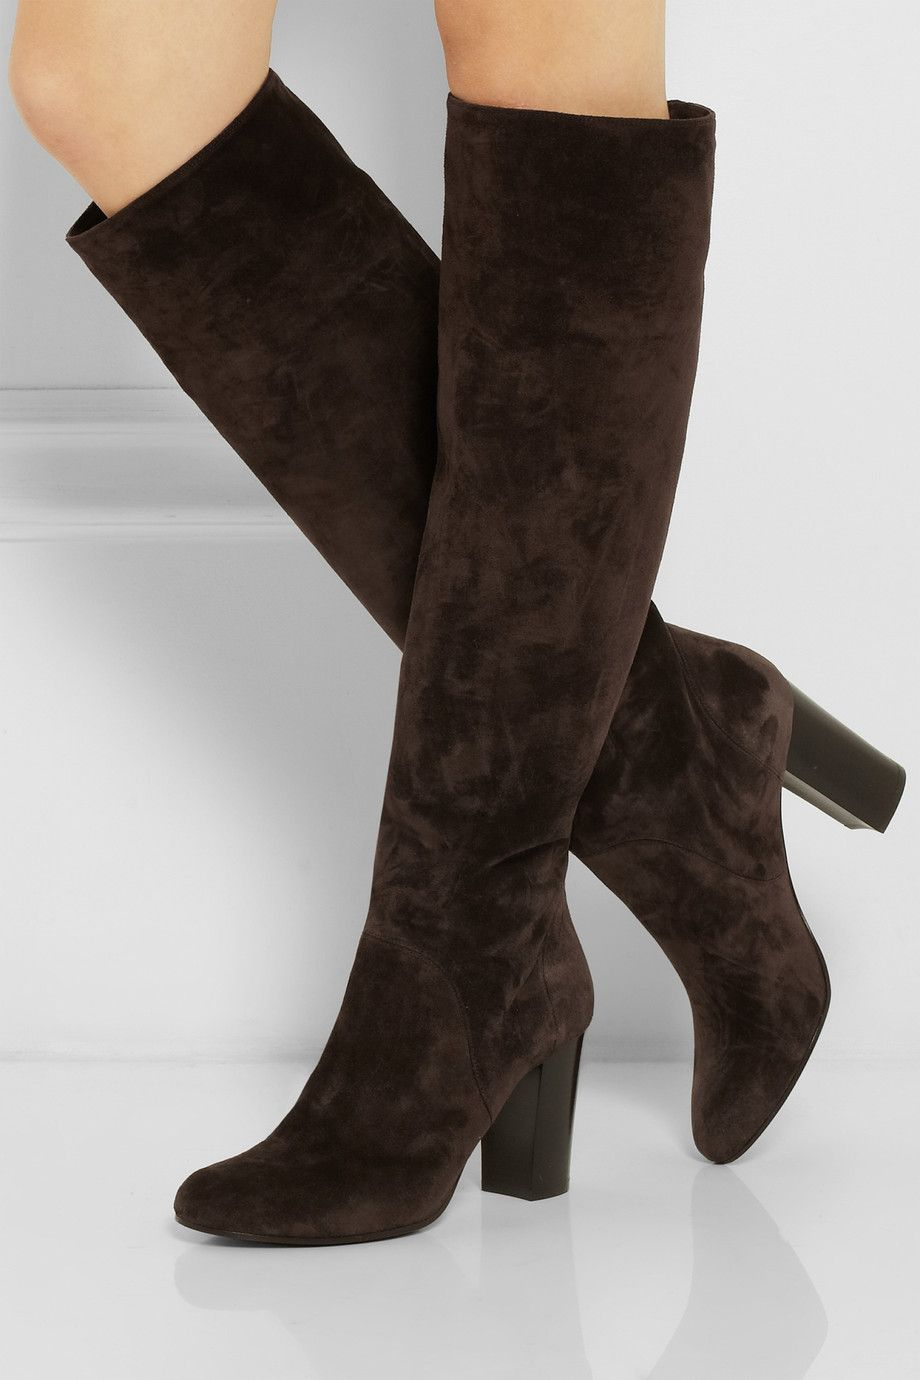 Lanvin Platform Knee-High Boots discount how much websites cheap online free shipping cheap quality S9WcIlJXNH